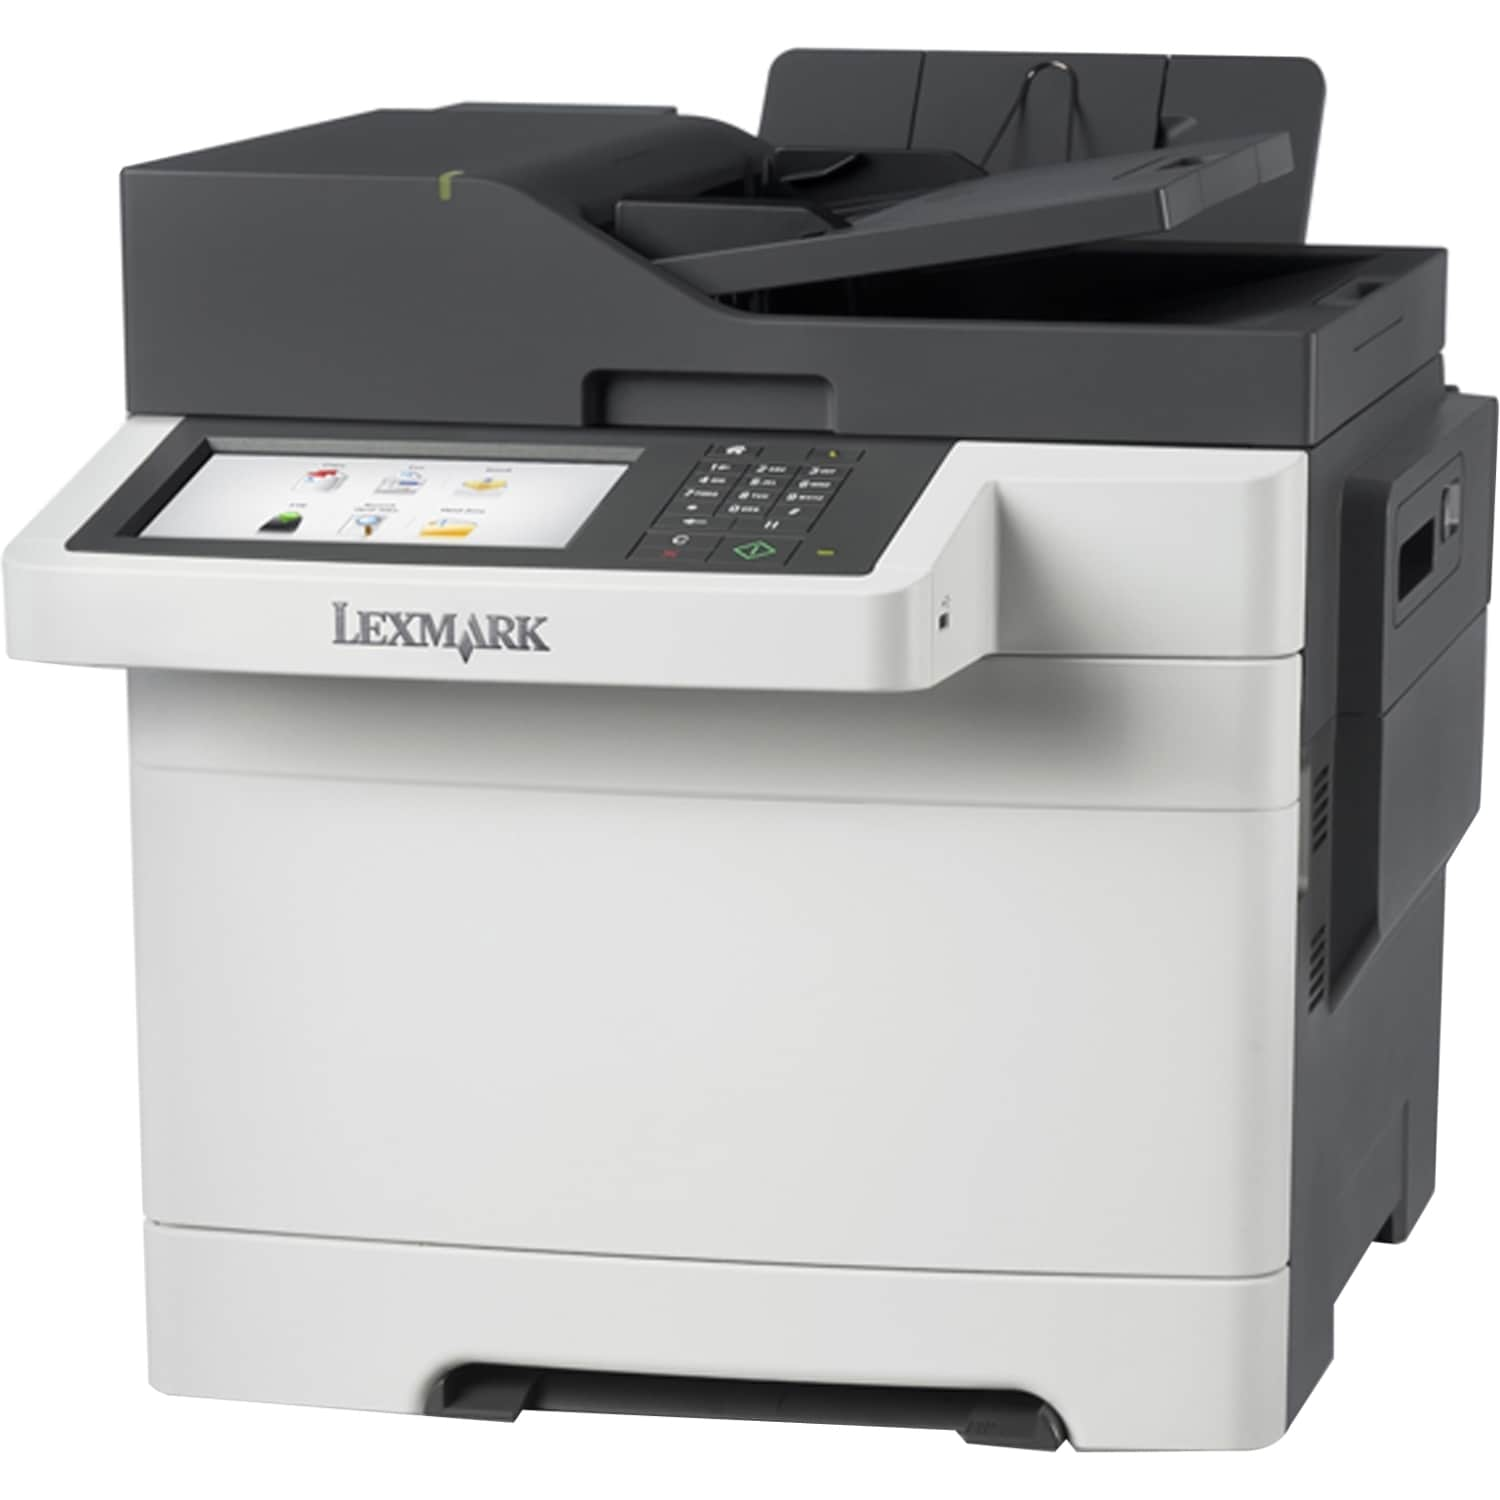 Lexmark CX510DE Laser Multifunction Printer - Color - Pla...